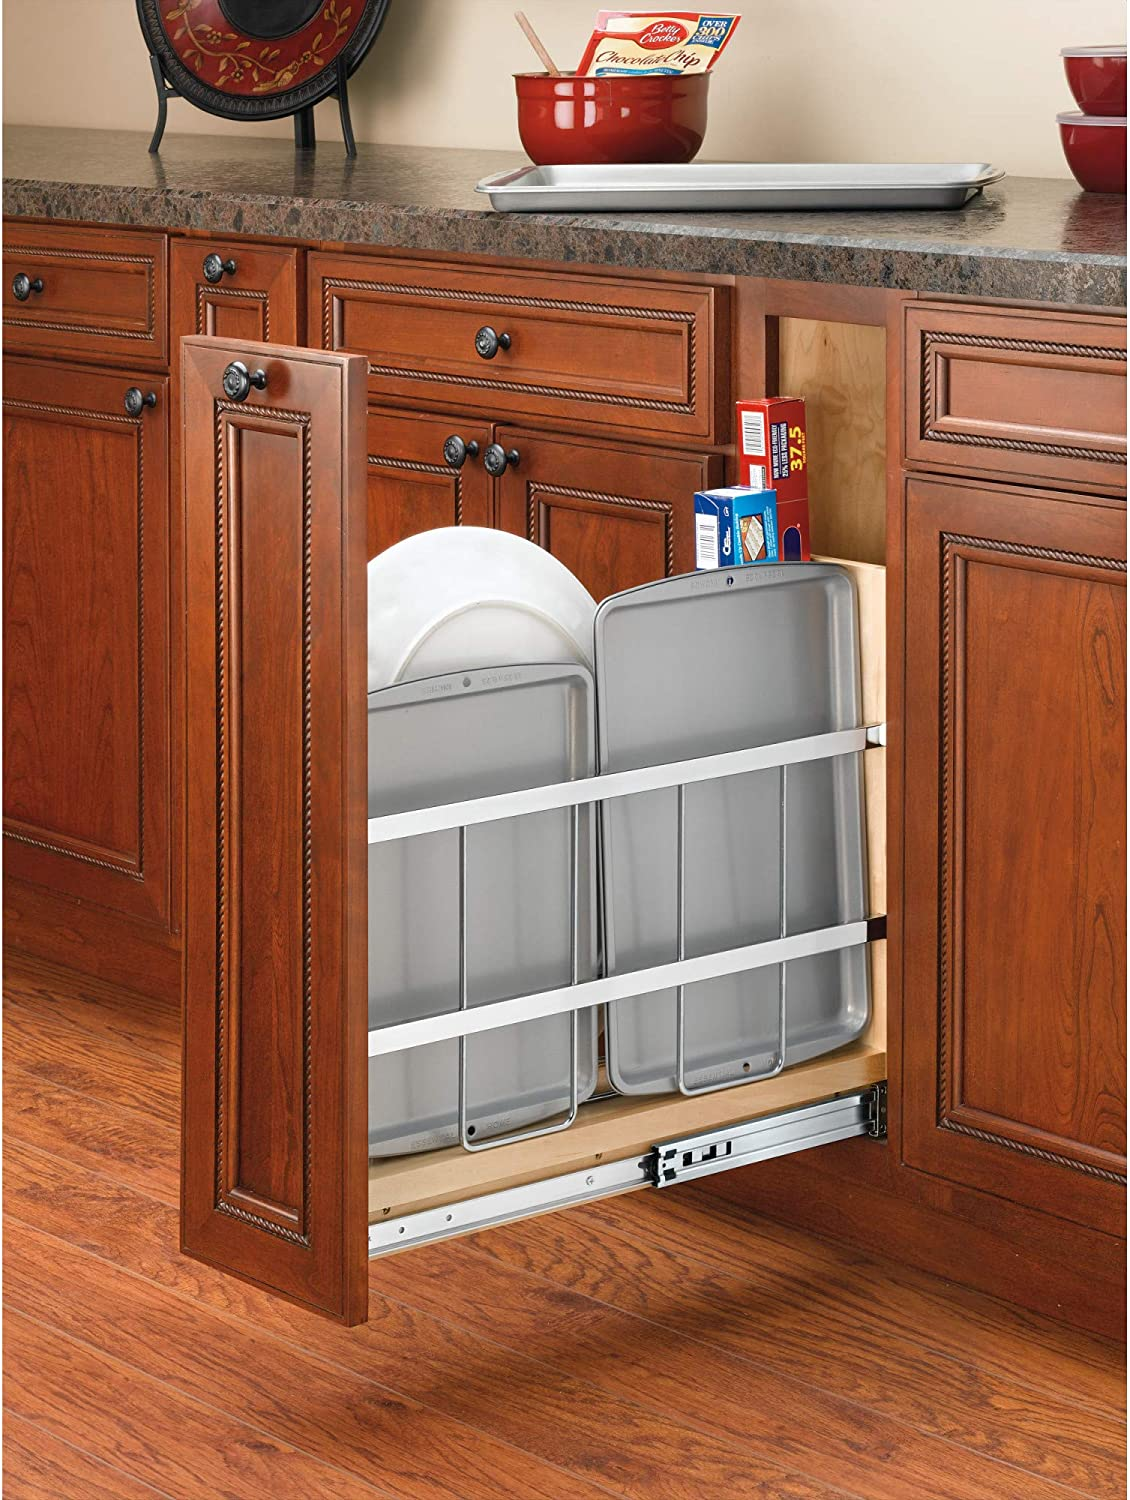 Buy Rev A Shelf 447 Bcbbsc 8c 447 Series 8 Inch Wide Pull Out Foil Wrap Sheet And Tray Divider Cabinet Organizer For Kitchen Base Cabinets Online In Vietnam B00nbygz1u